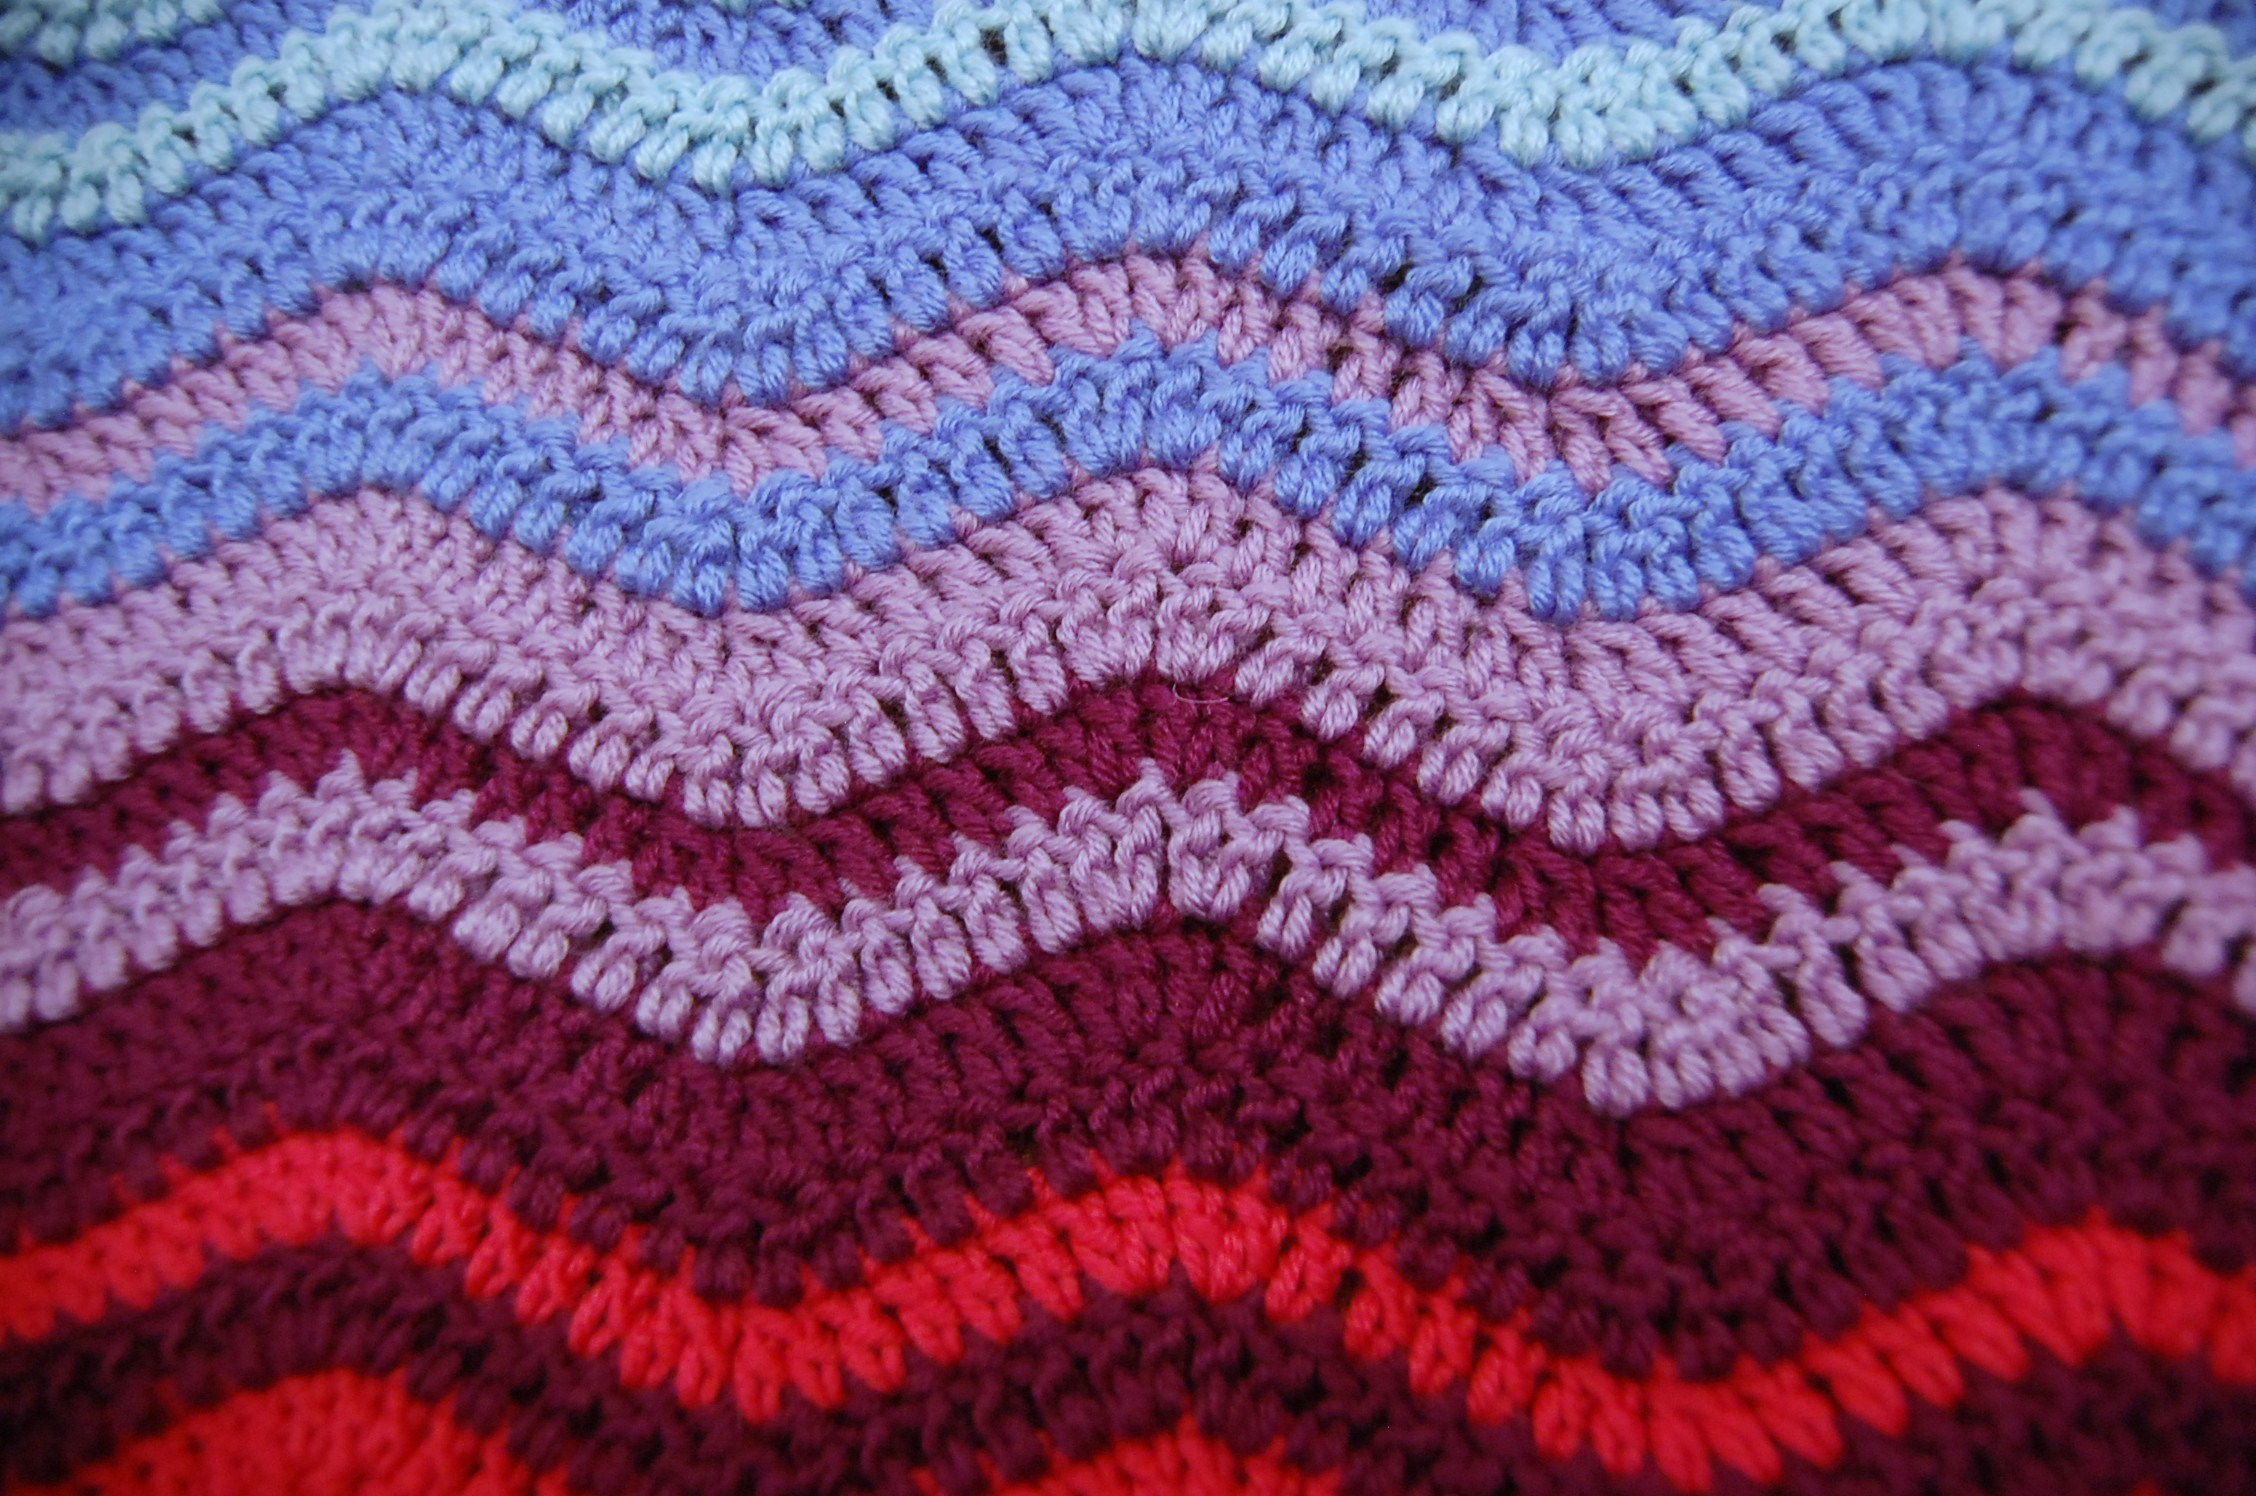 BASIC RIPPLE CROCHET PATTERNS – Crochet Patterns